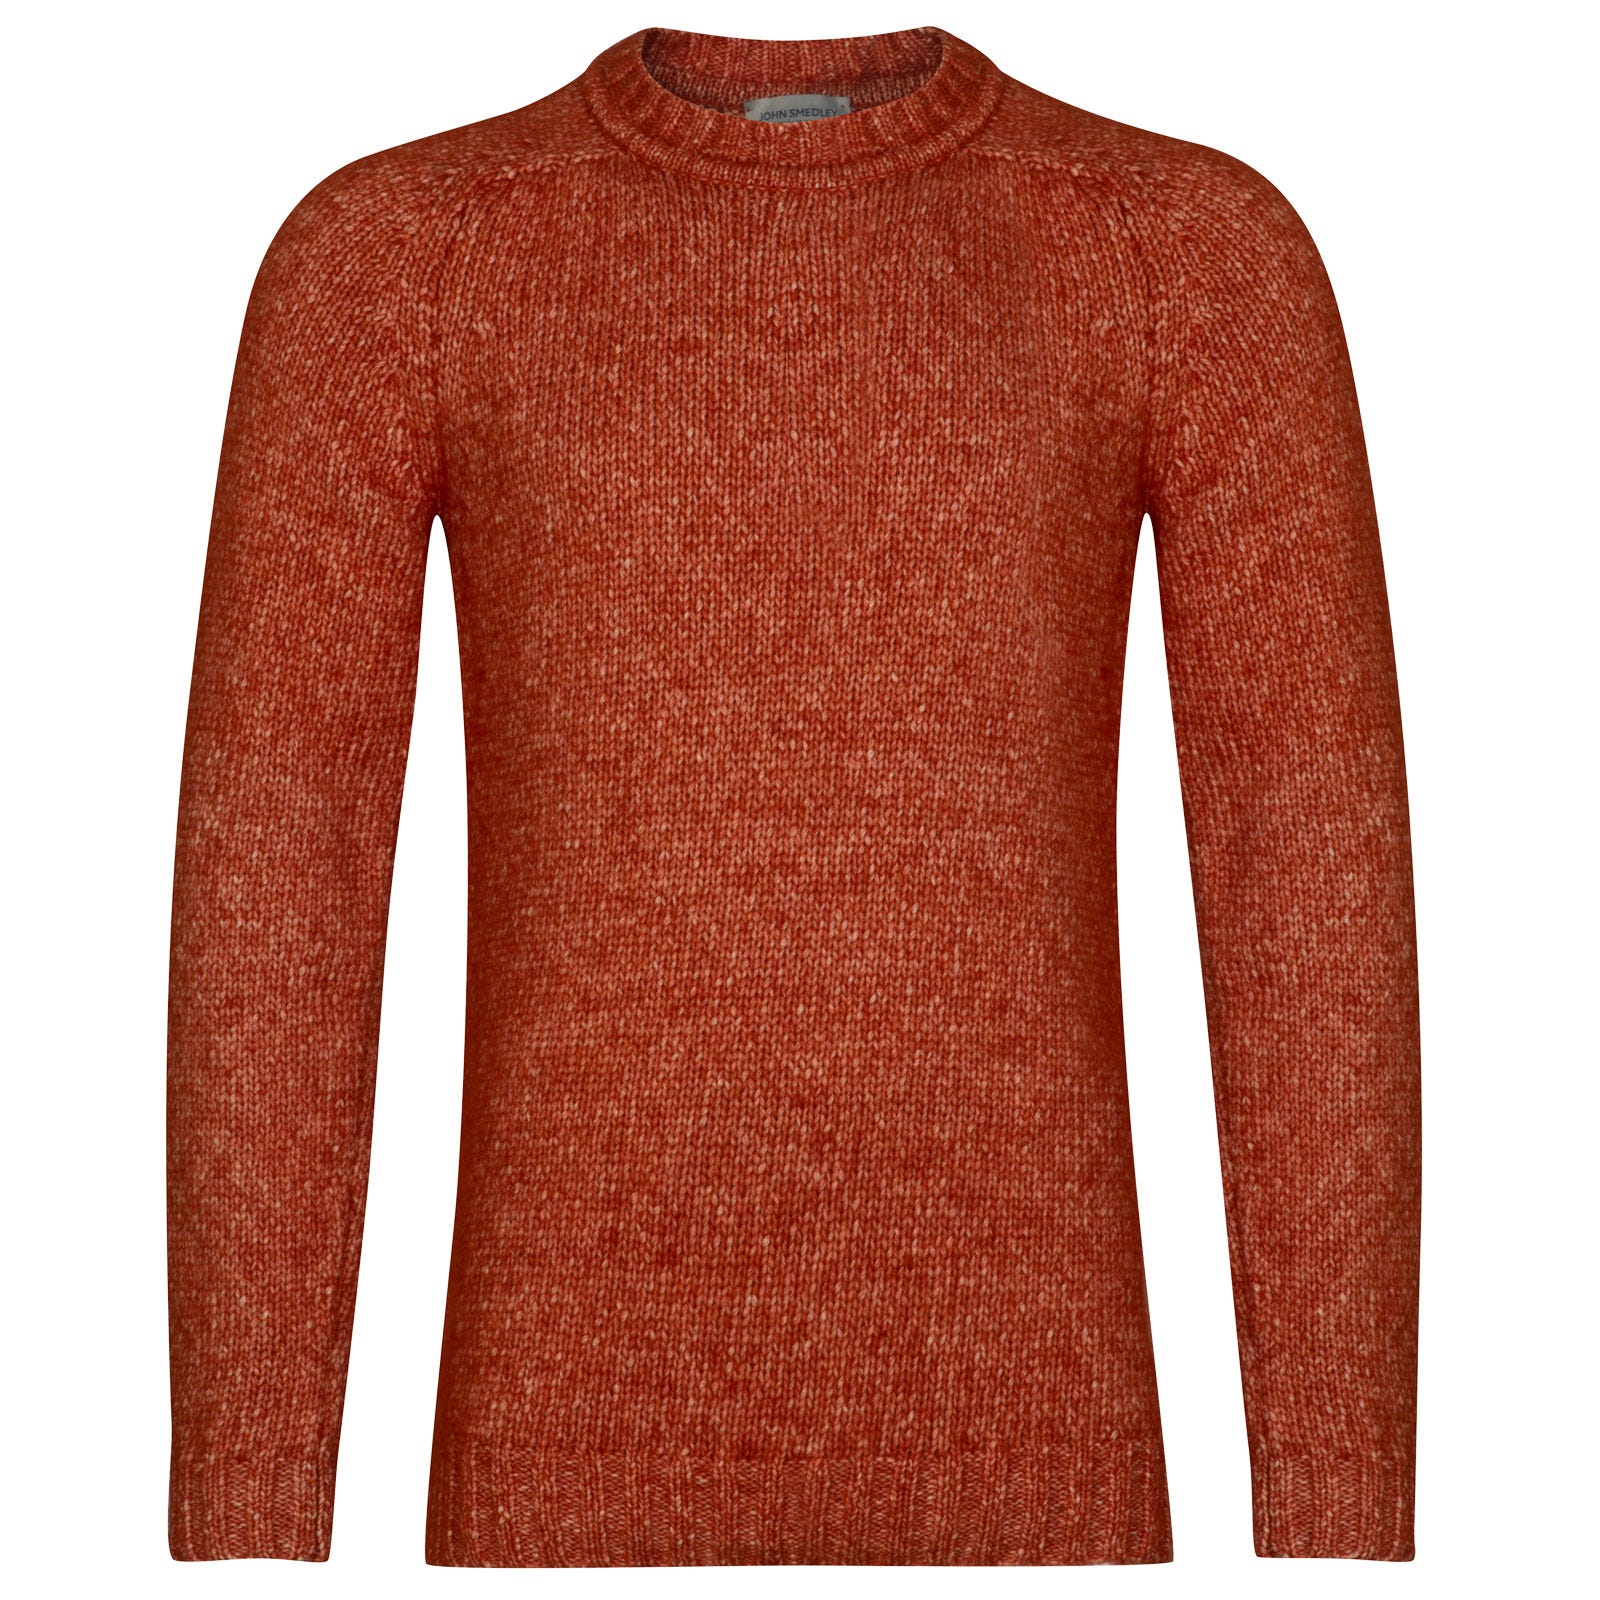 John Smedley storr Alpaca, Wool & Cotton Pullover in Flare Orange-M